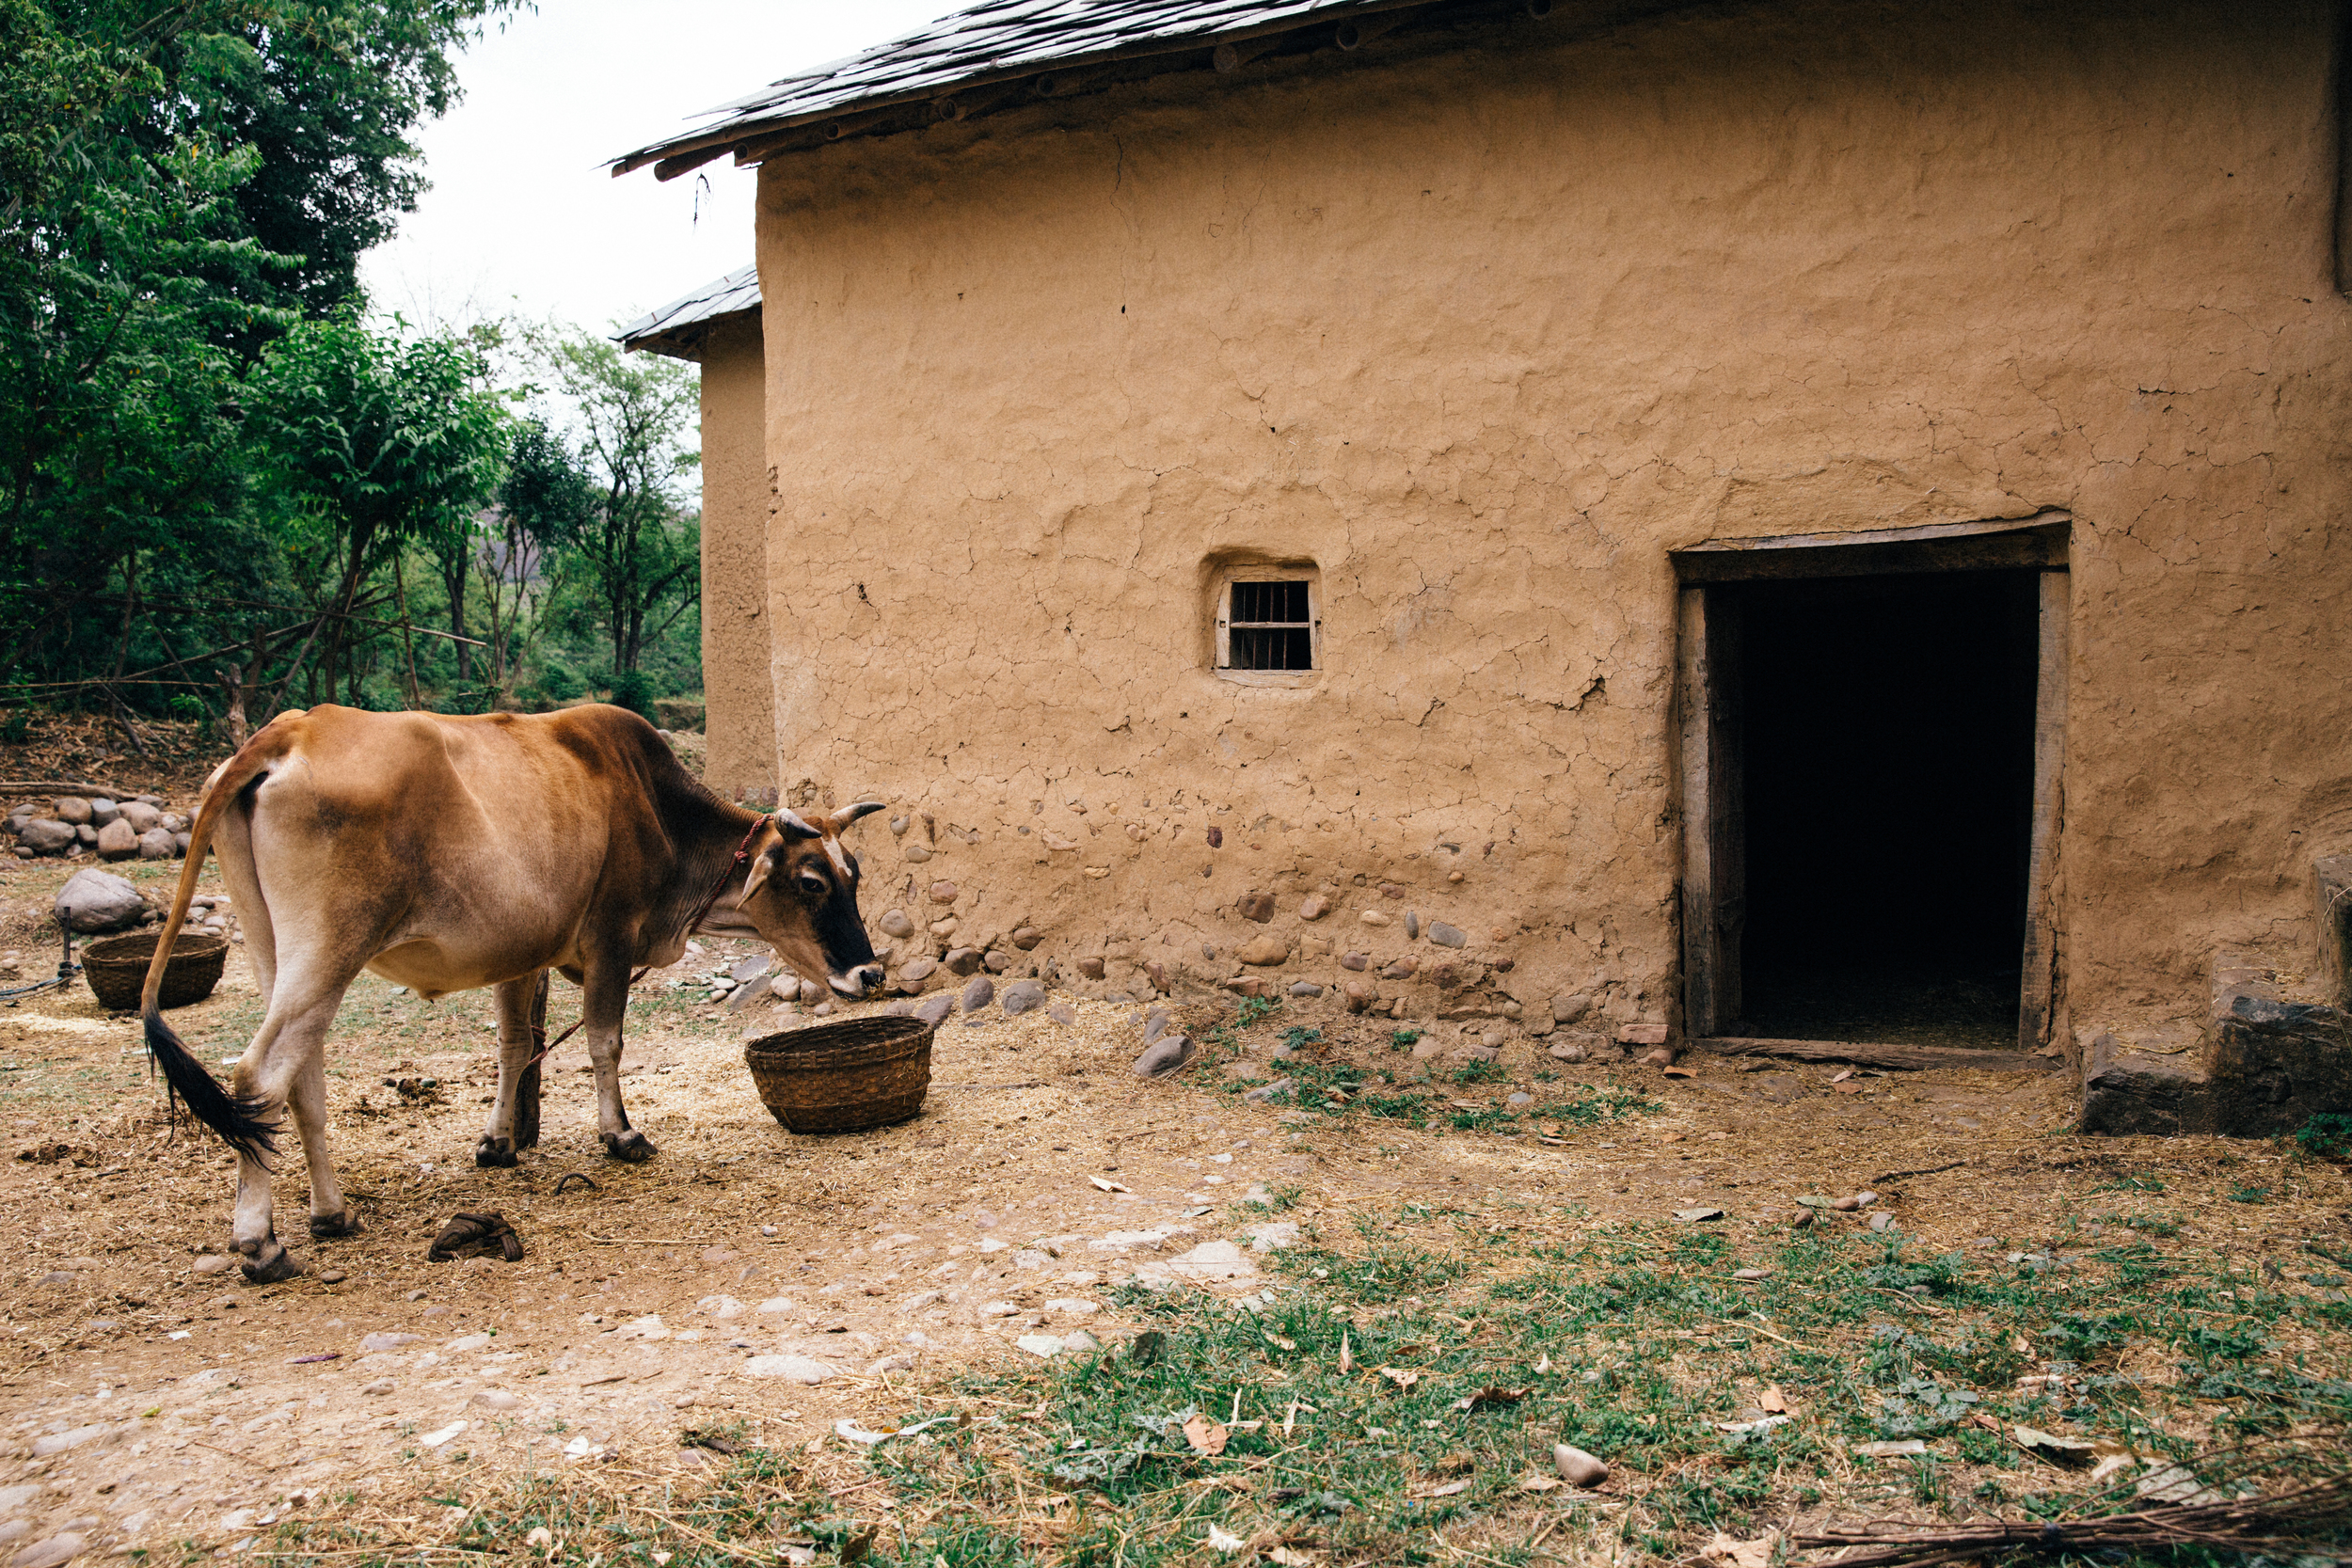 In the village, India